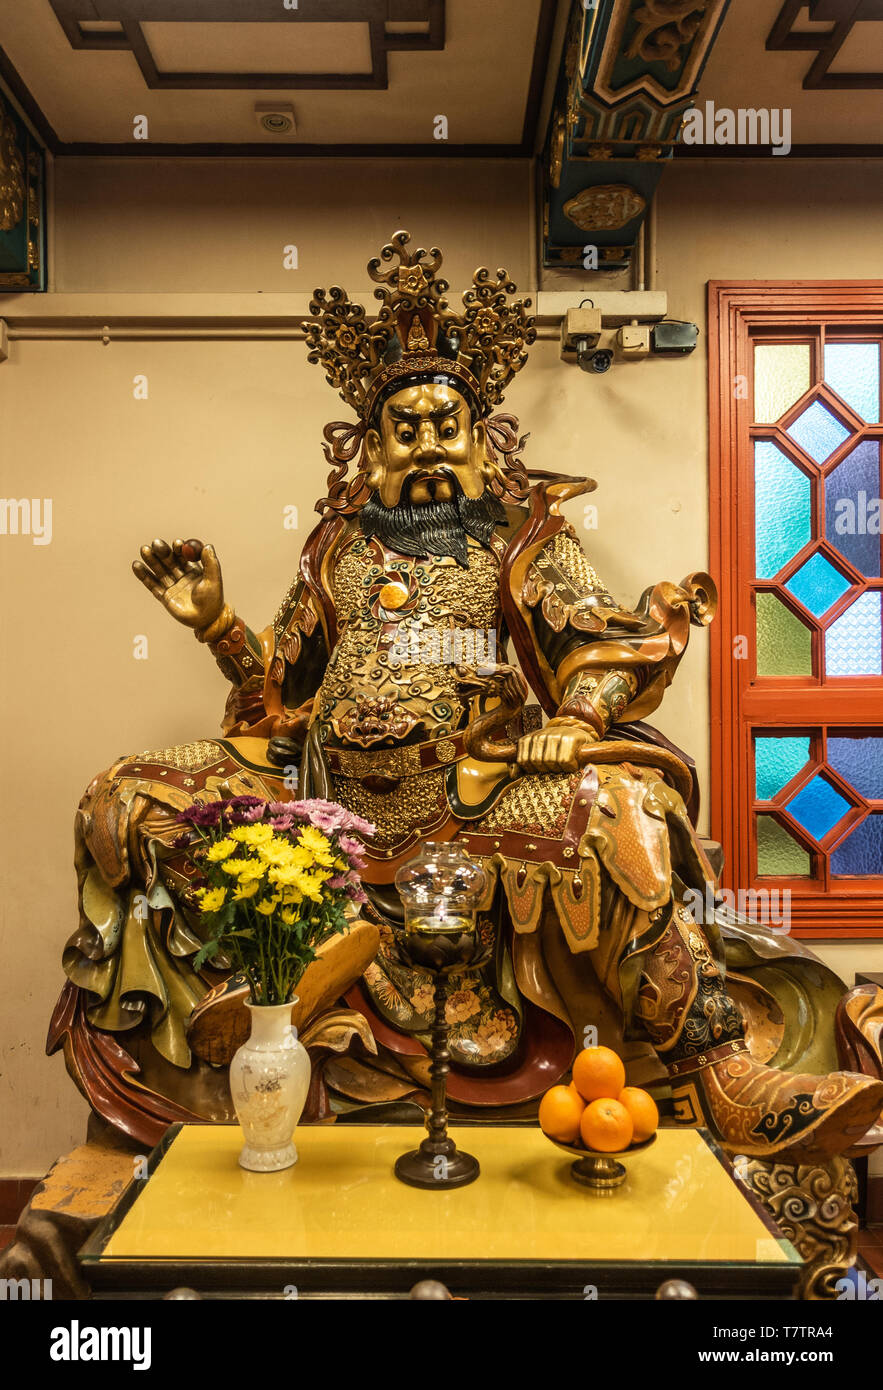 Hong Kong, China - March 7, 2019: Lantau Island. Po Lin Buddhist Monastery. Extensively decorated statue of West heavenly king, Virupaksa offers shade - Stock Image